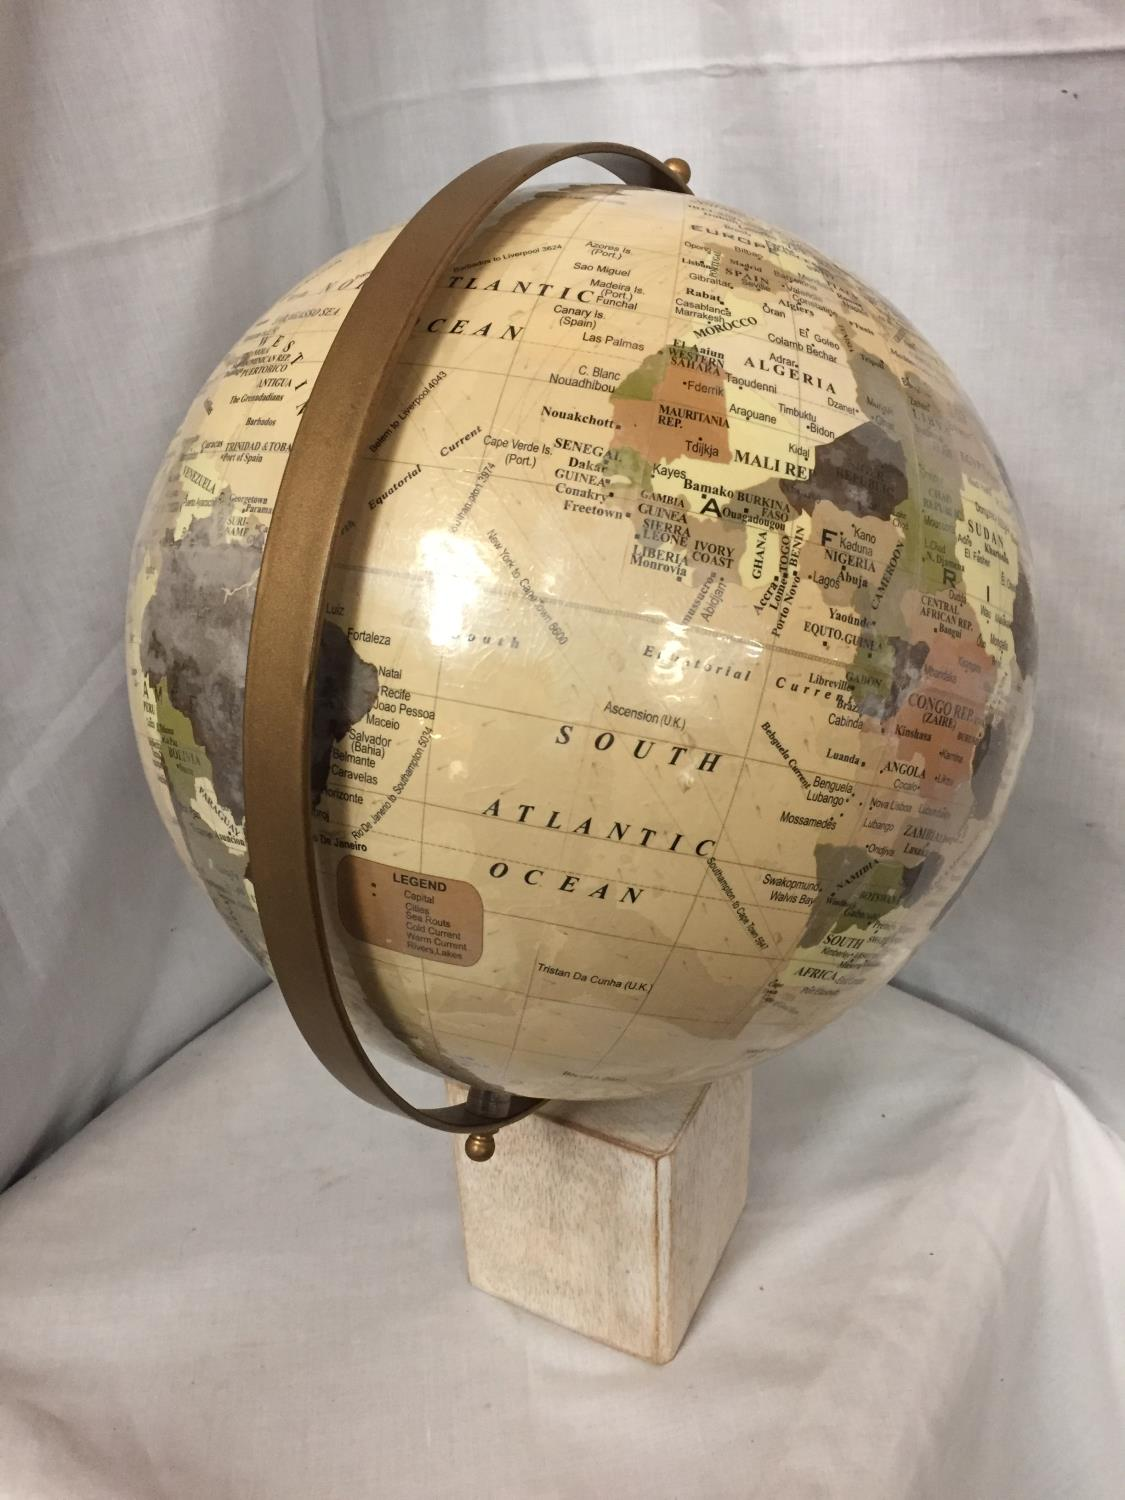 A LARGE GLOBE ON A WOODEN BASE - Image 3 of 3